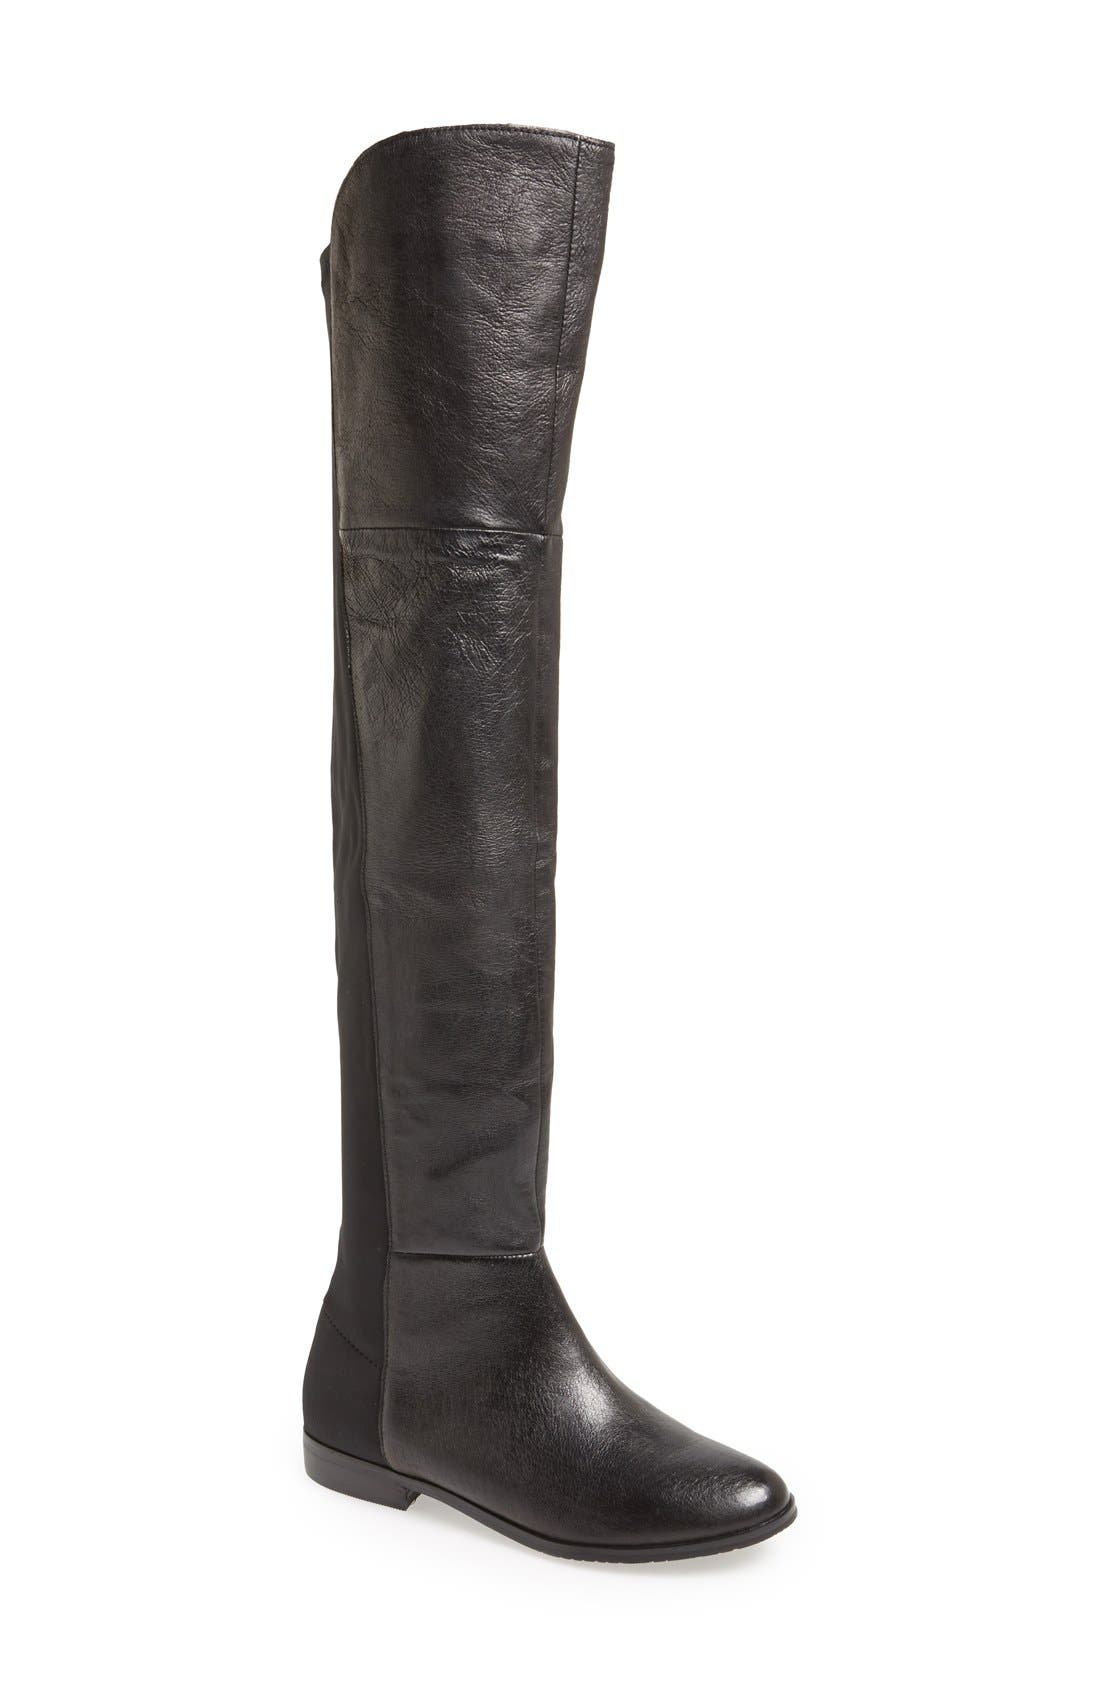 Main Image - Chinese Laundry 'Riley' Over The Knee Boot (Women)